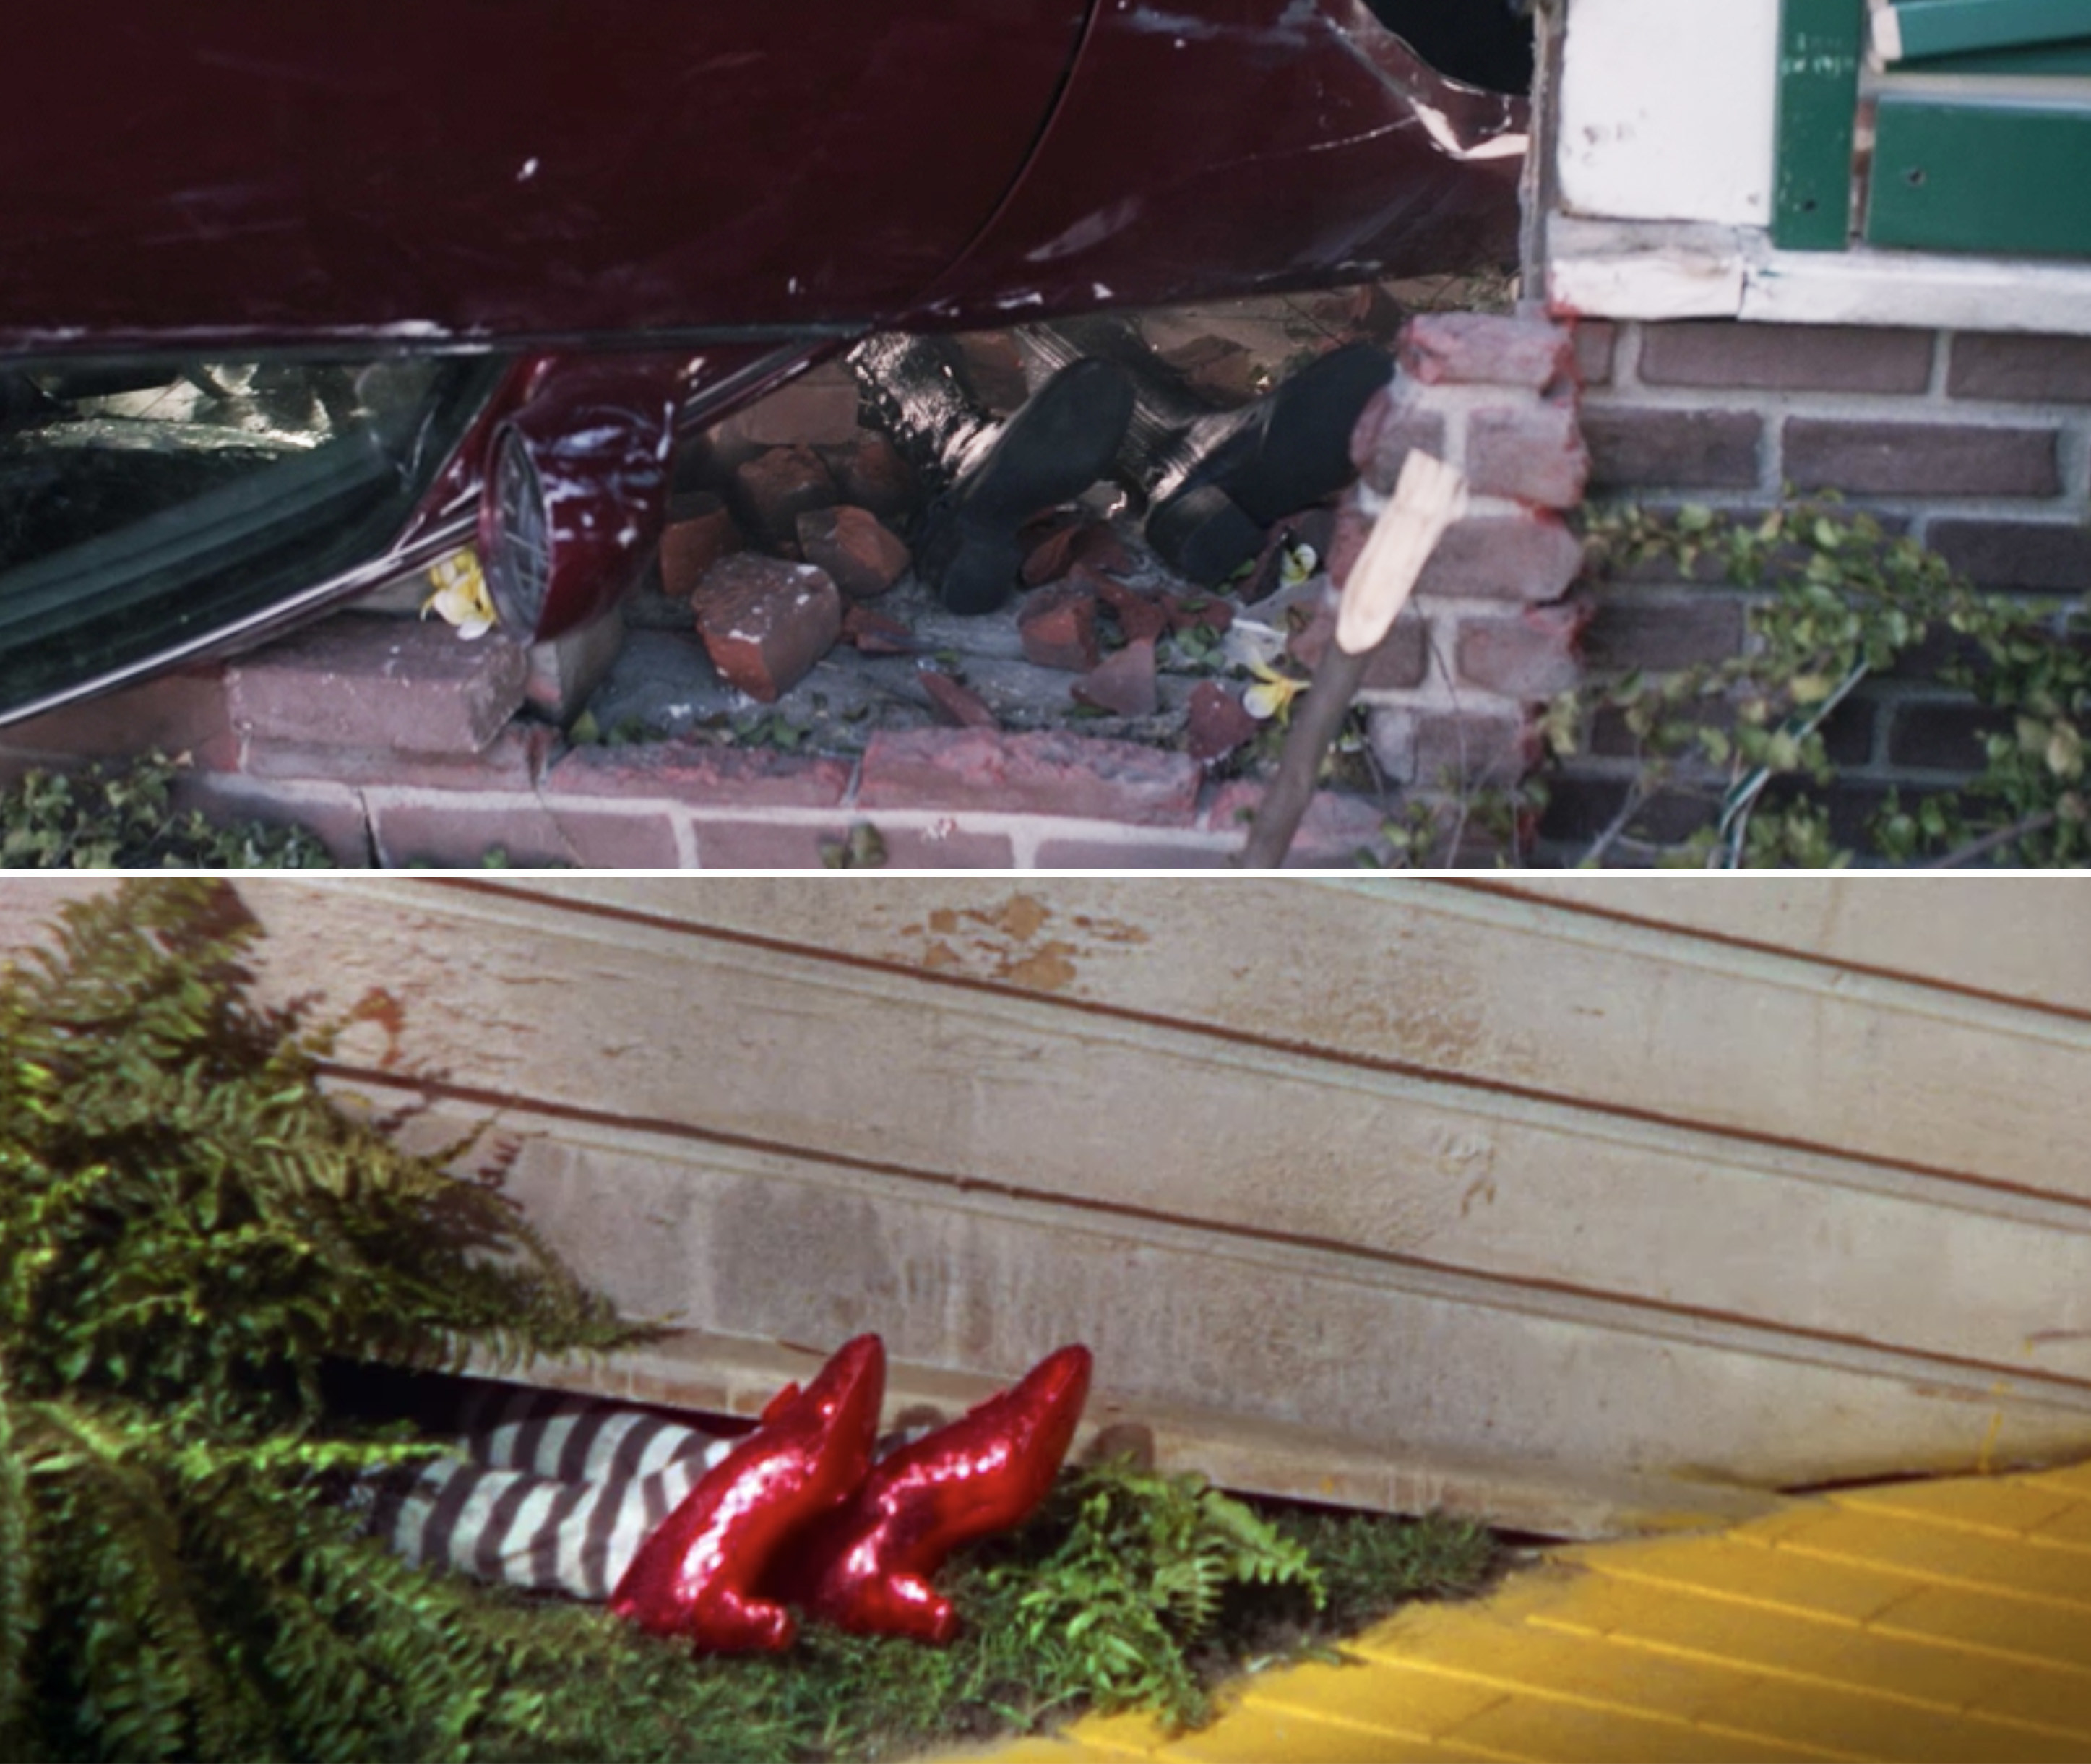 Agatha's boots sticking out from under a car vs. the ruby slippers under the house in the Wizard of Oz